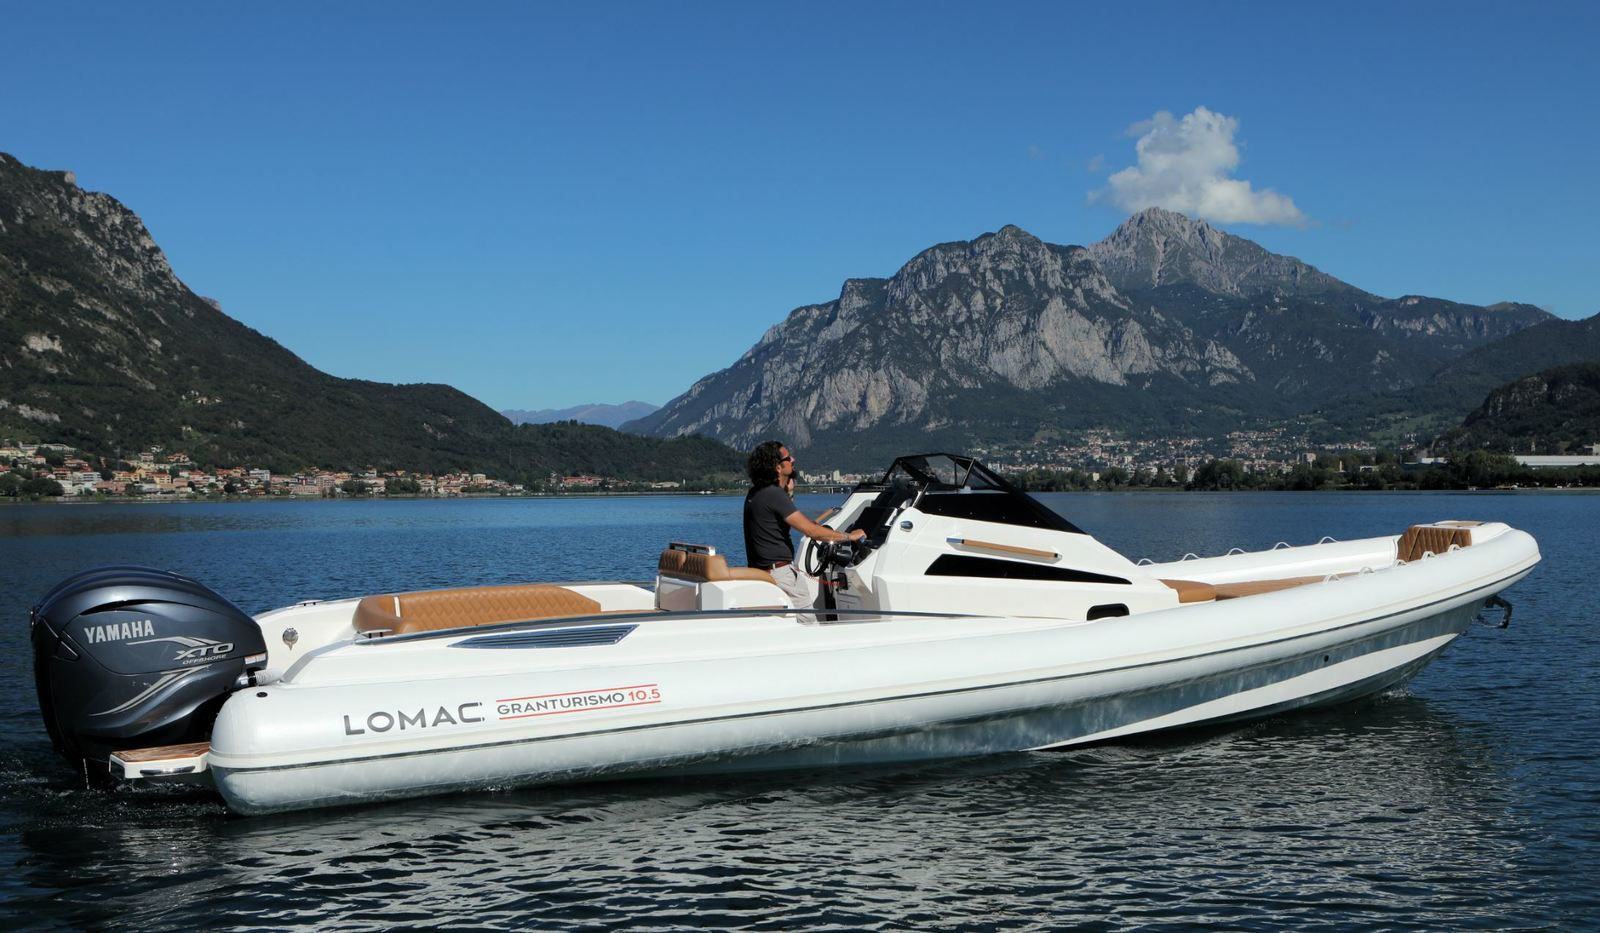 Lomac celebrates its 60th anniversary  at the Genoa Boat Show 2020 with two Limited Editions